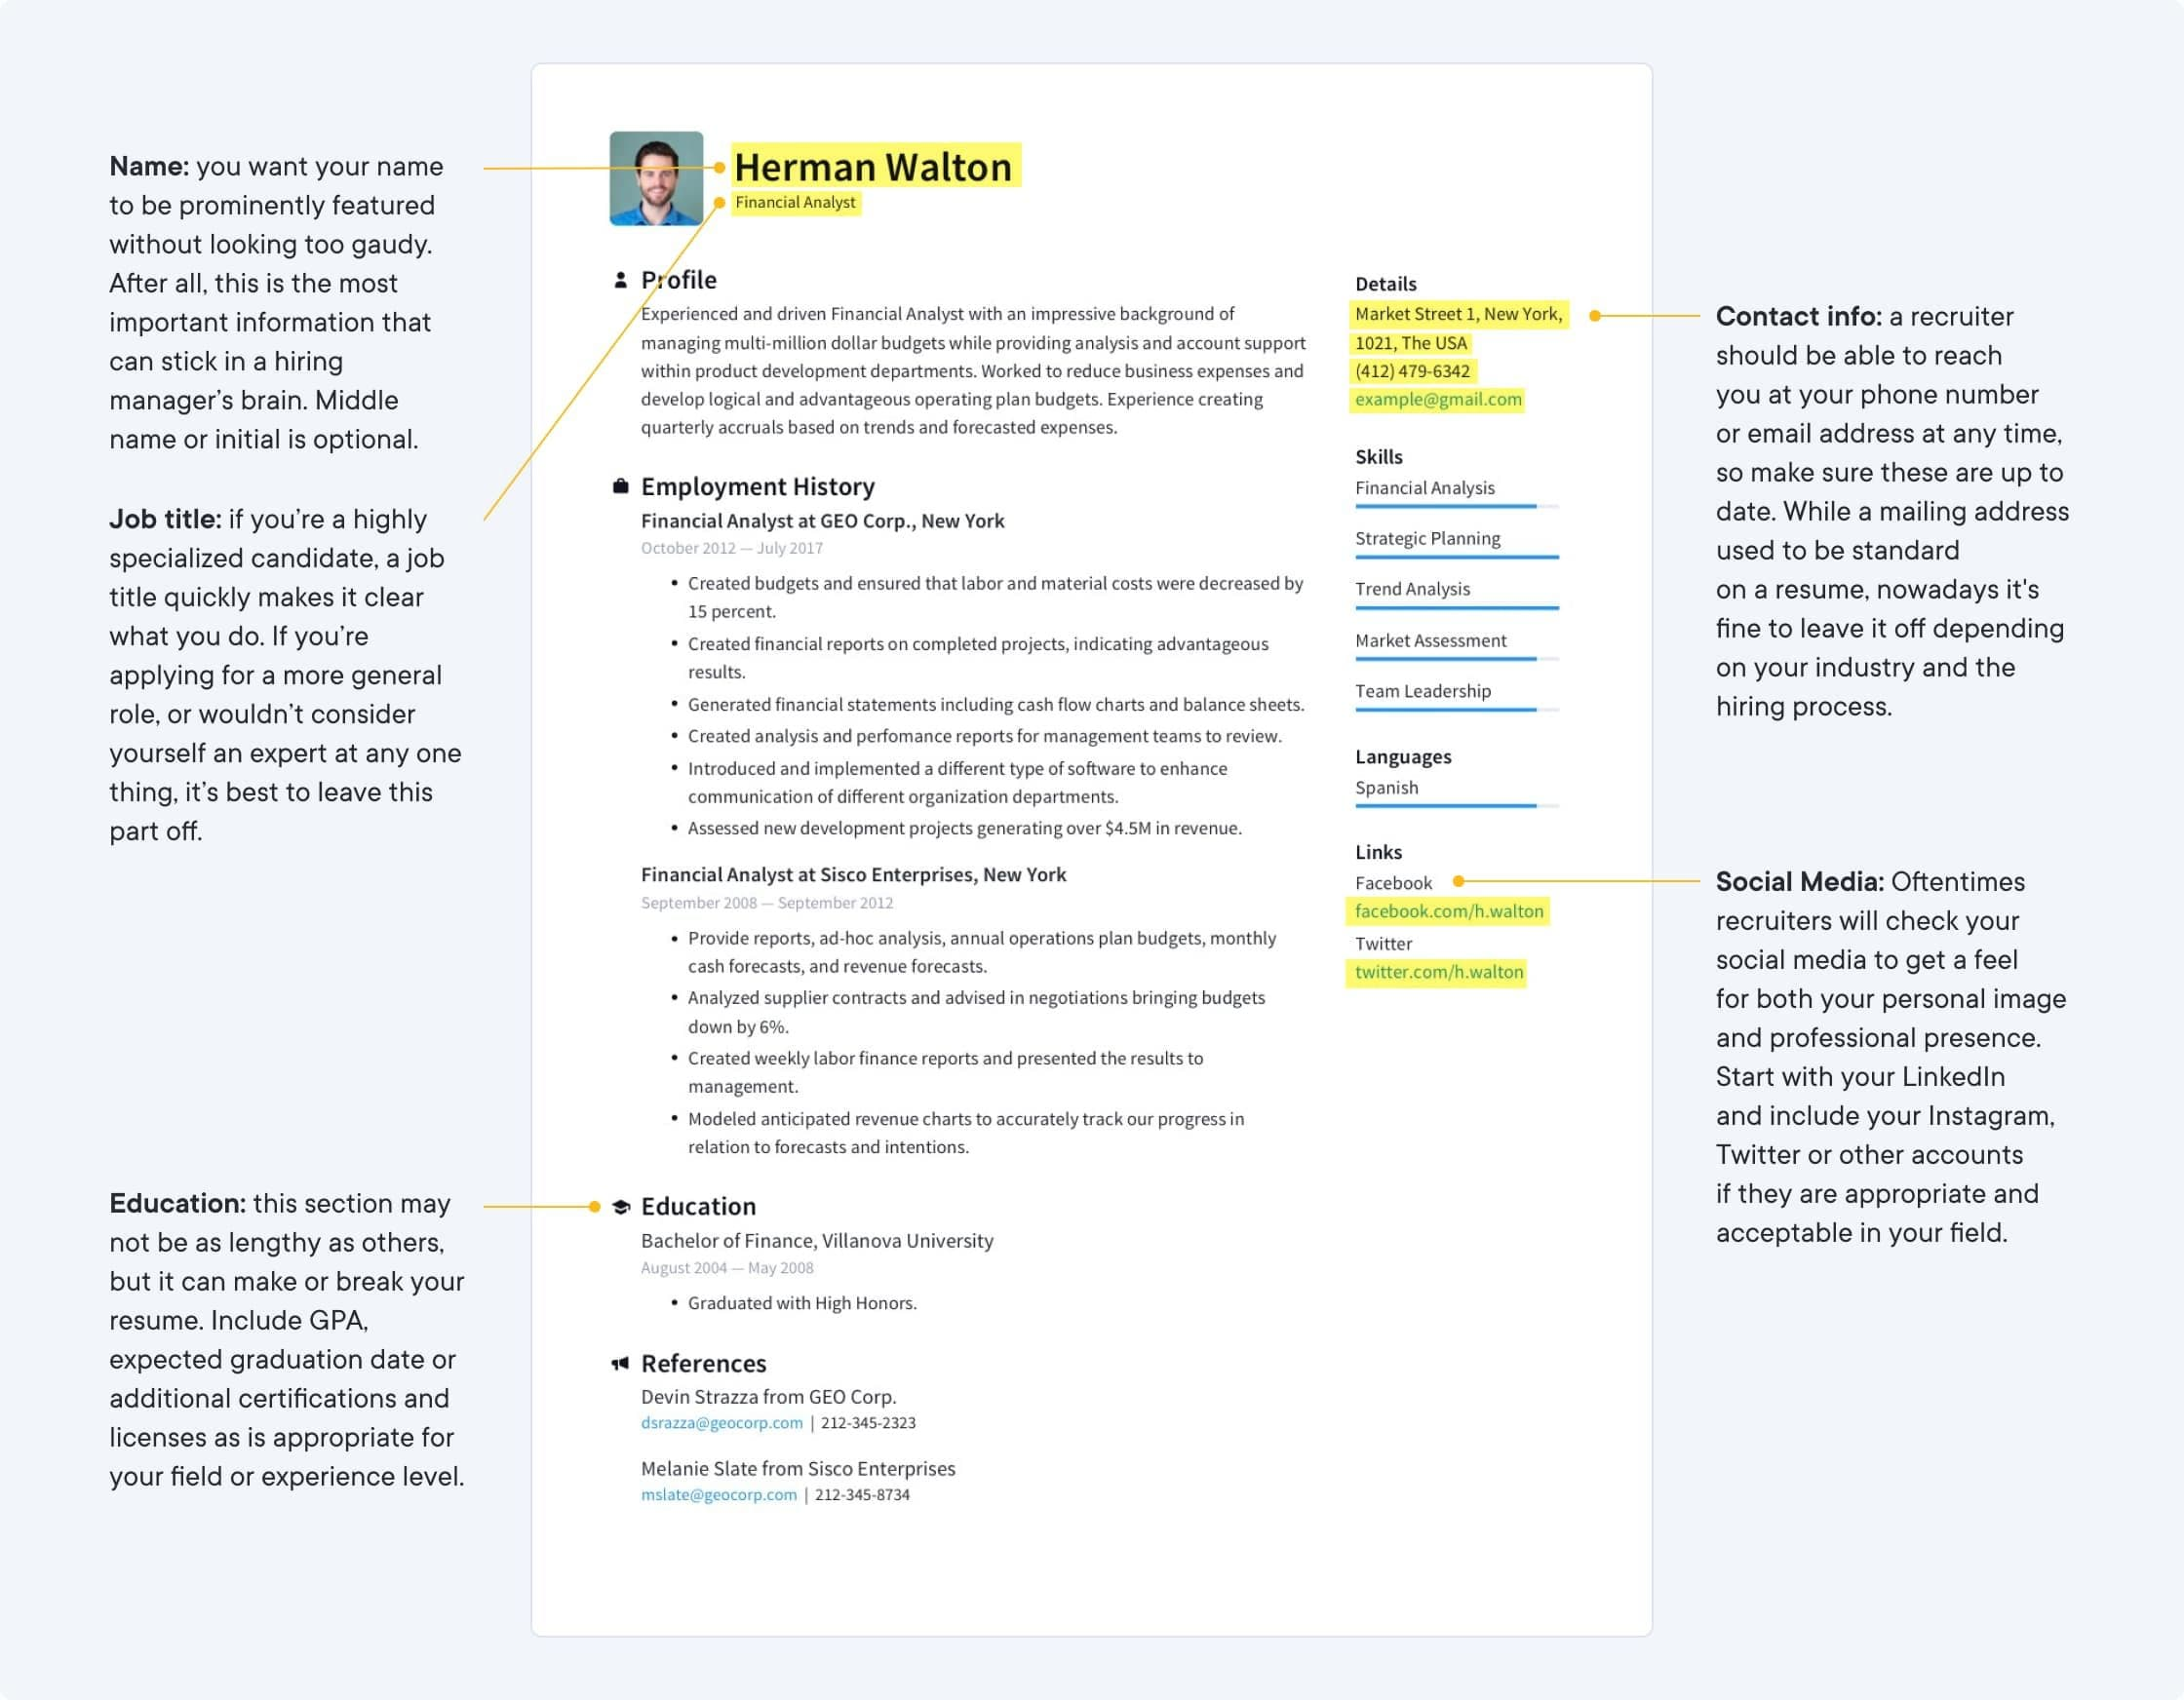 resume templates free create perfect io template with reference section technical skills Resume Resume Template With Reference Section